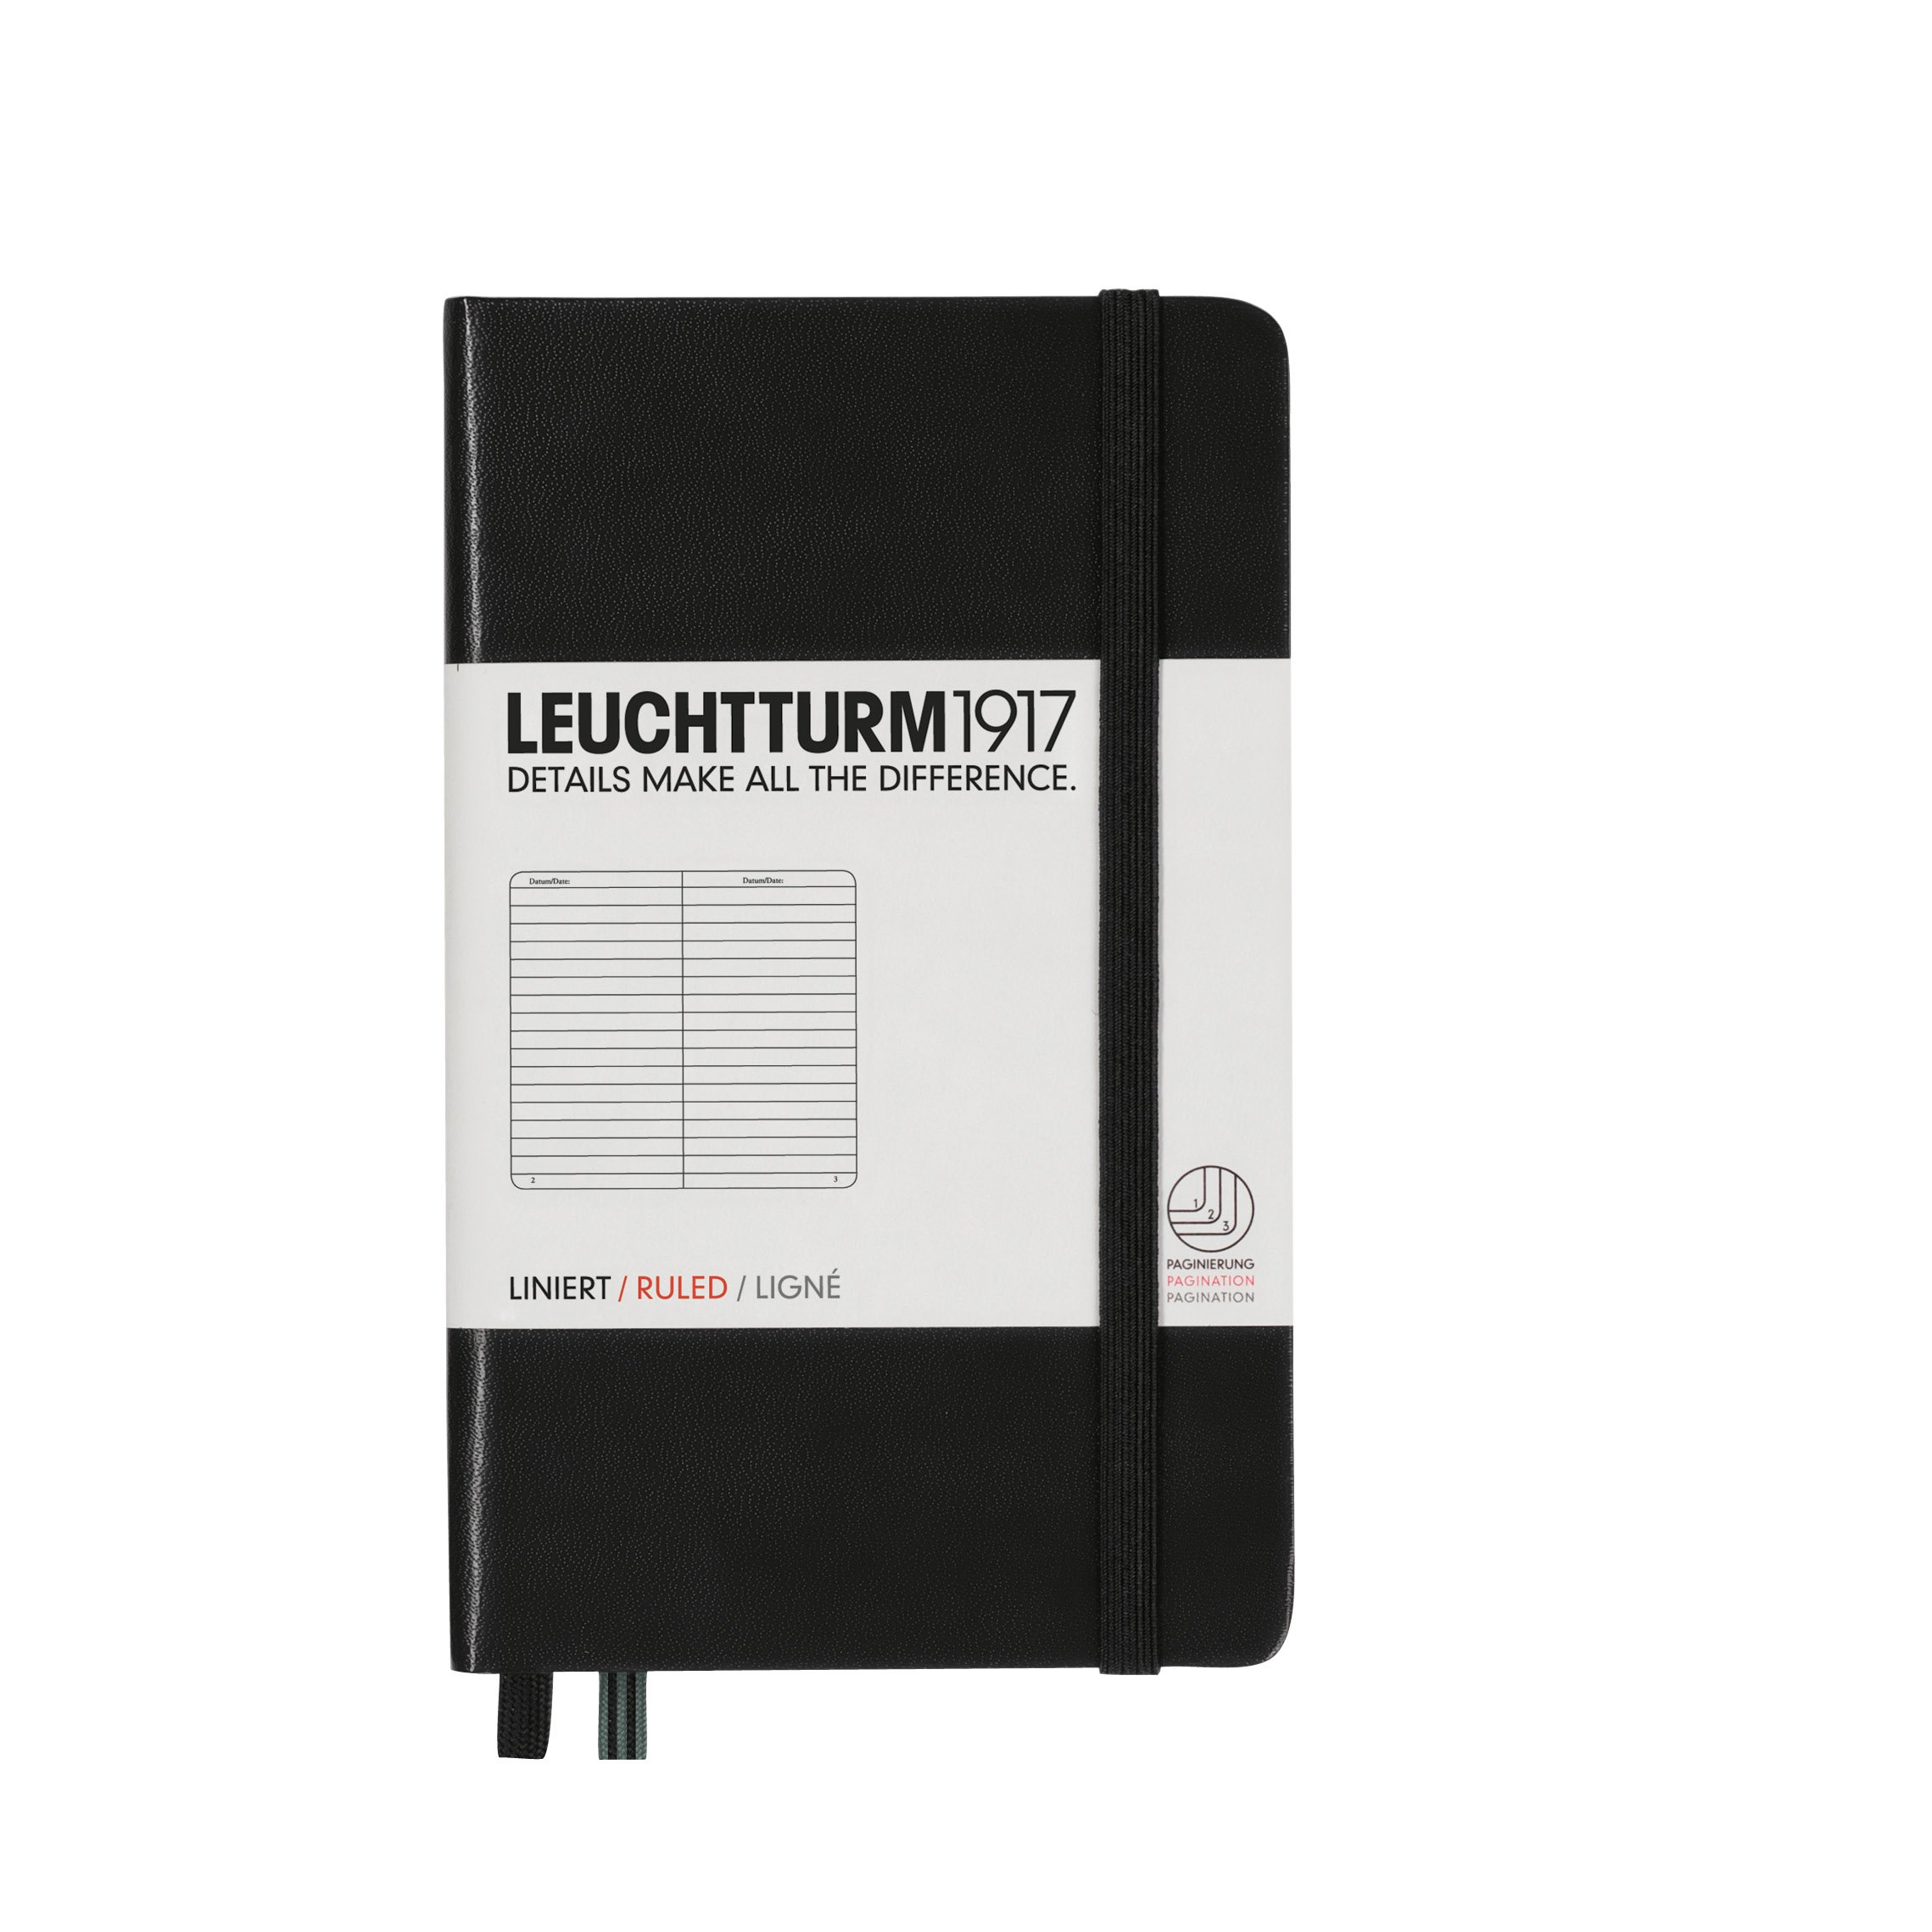 Leuchtturm1917 Classic Hardcover Ruled Pocket Notebook Black by Kikkerland (Image #1)